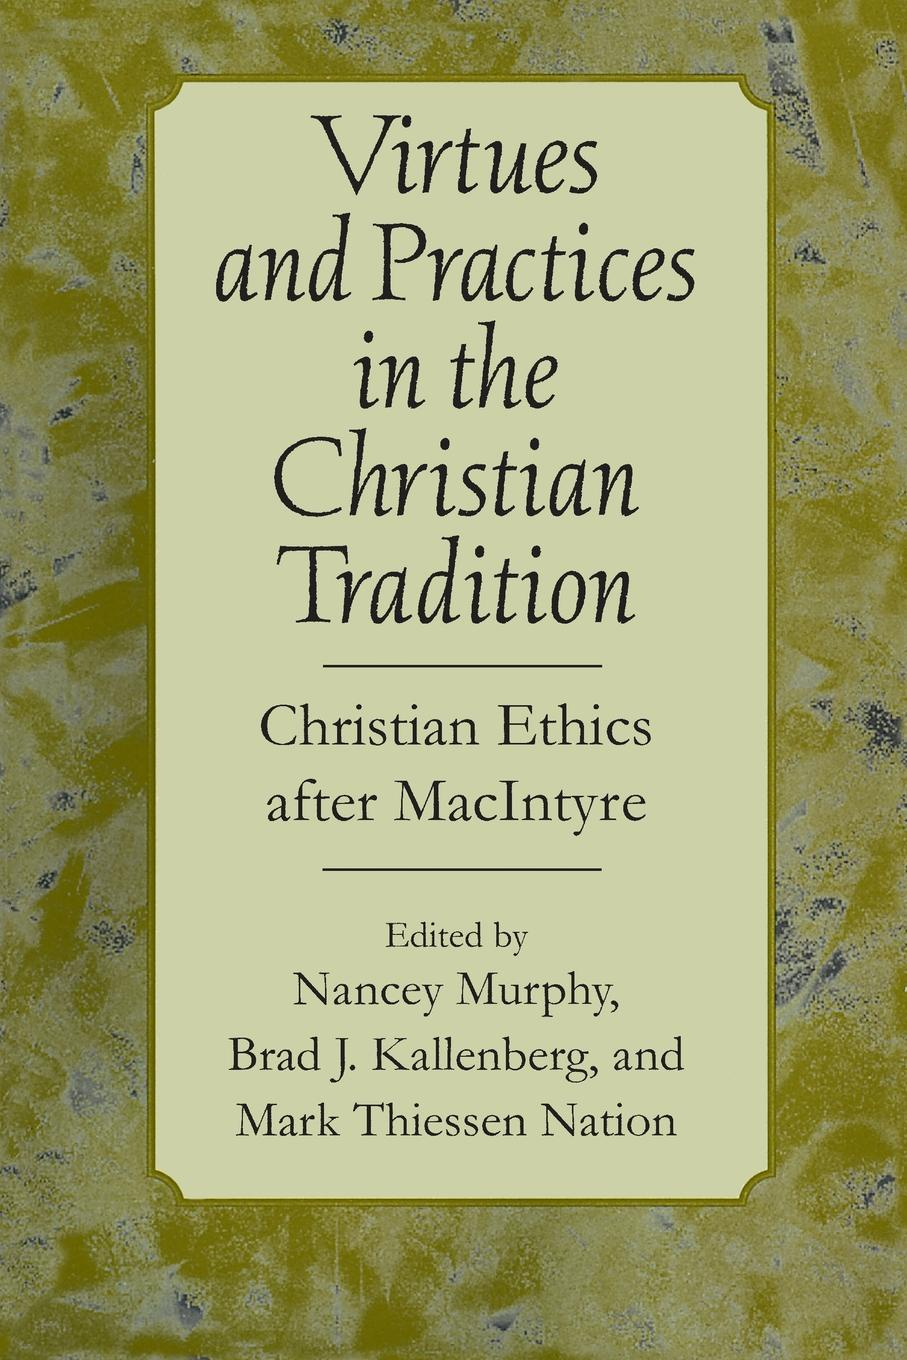 Virtues and Practices in the Christian Tradition. Christian Ethics after MacIntyre